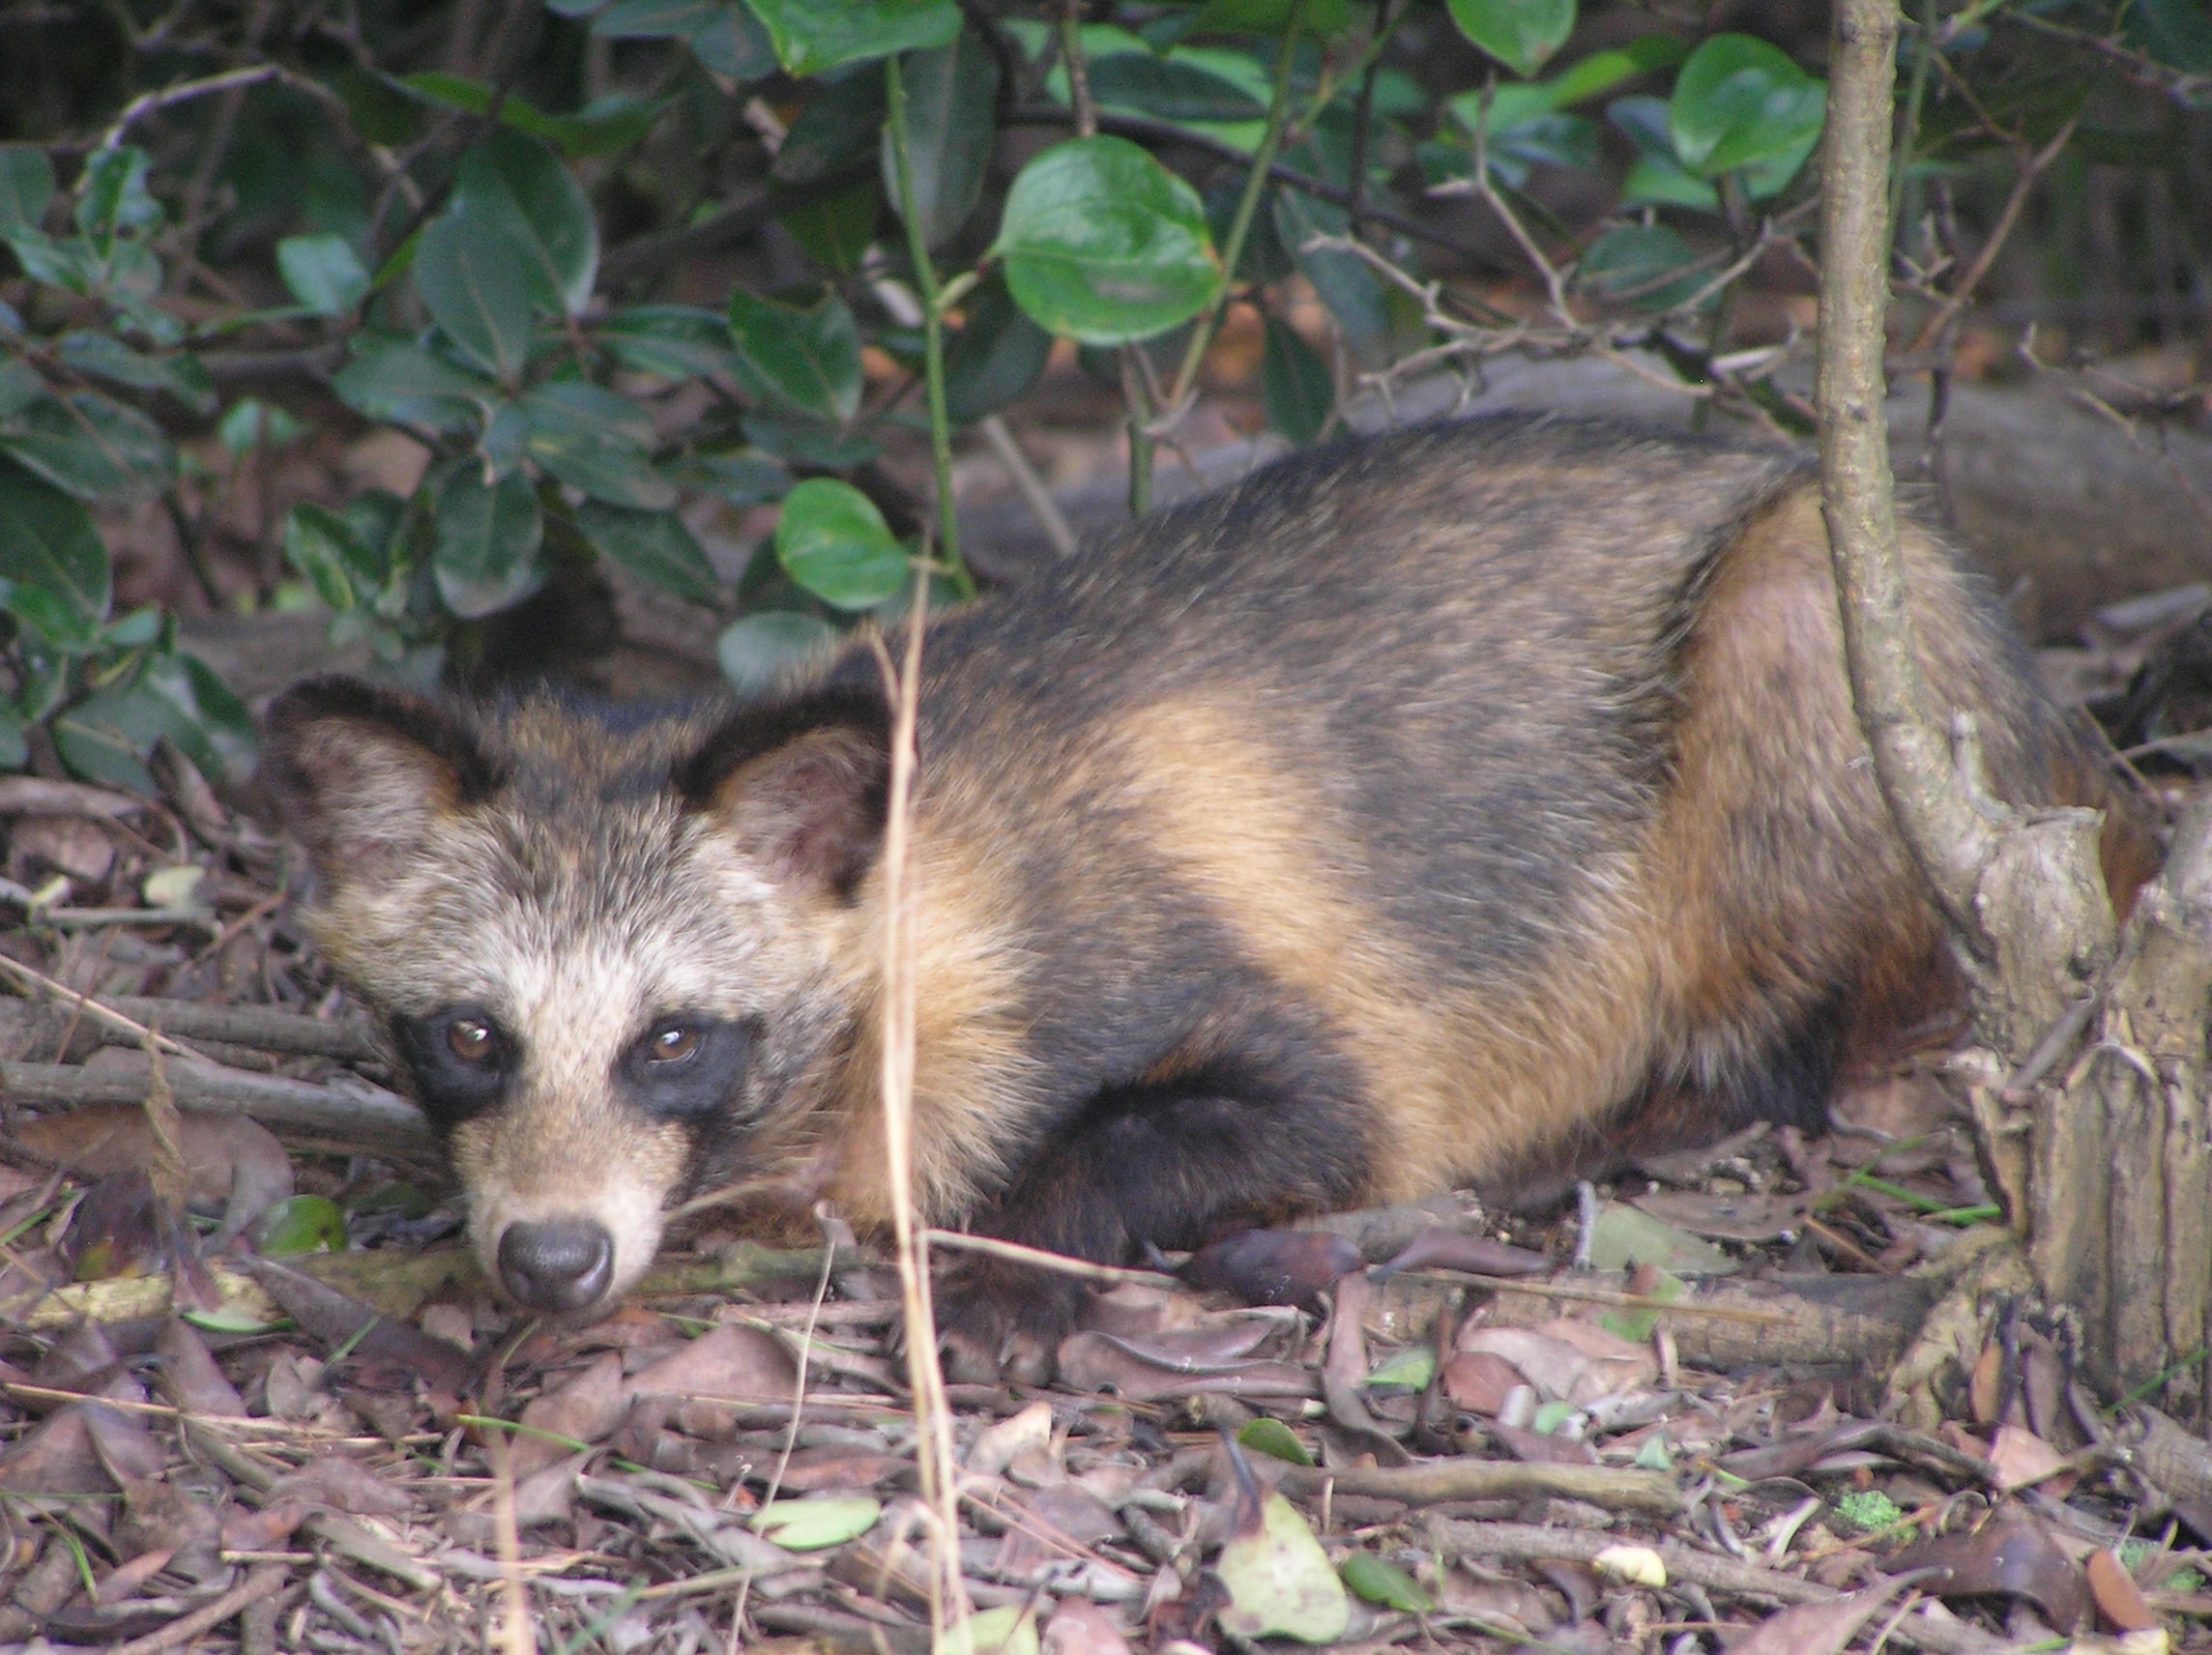 http://upload.wikimedia.org/wikipedia/commons/c/c9/Tanuki_the_%60Raccoon_Dog%60.jpg